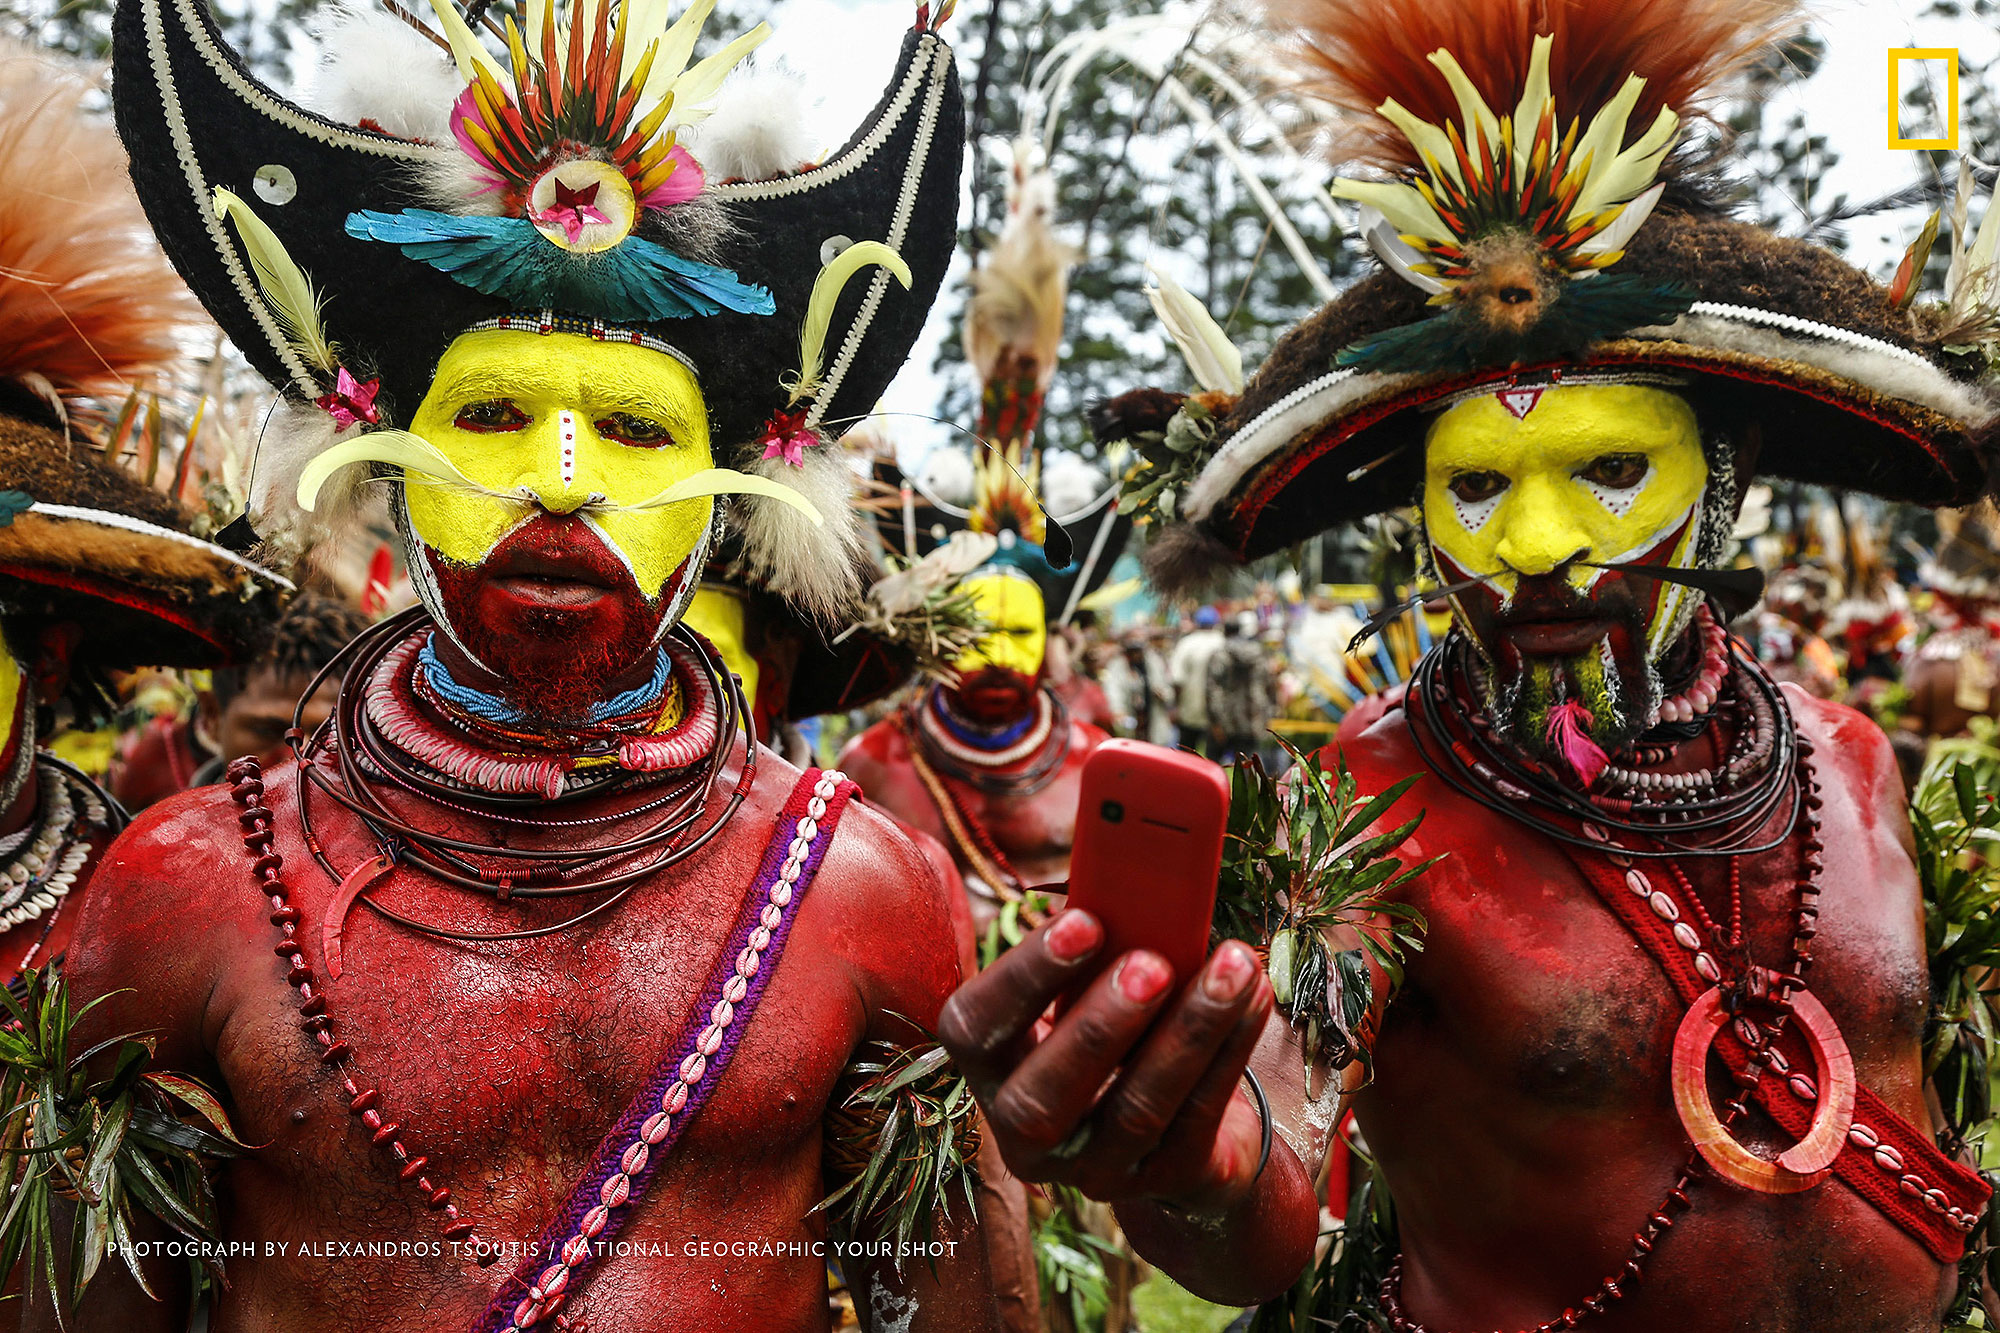 Tech cannibalism Technology has conquered every part of our planet, even the isolated and once infamous for cannibalistic customs, land of Papua New Guinea 6. Photograph by Julie Redwine / National Geographic Your Shot Old-Fashioned Future